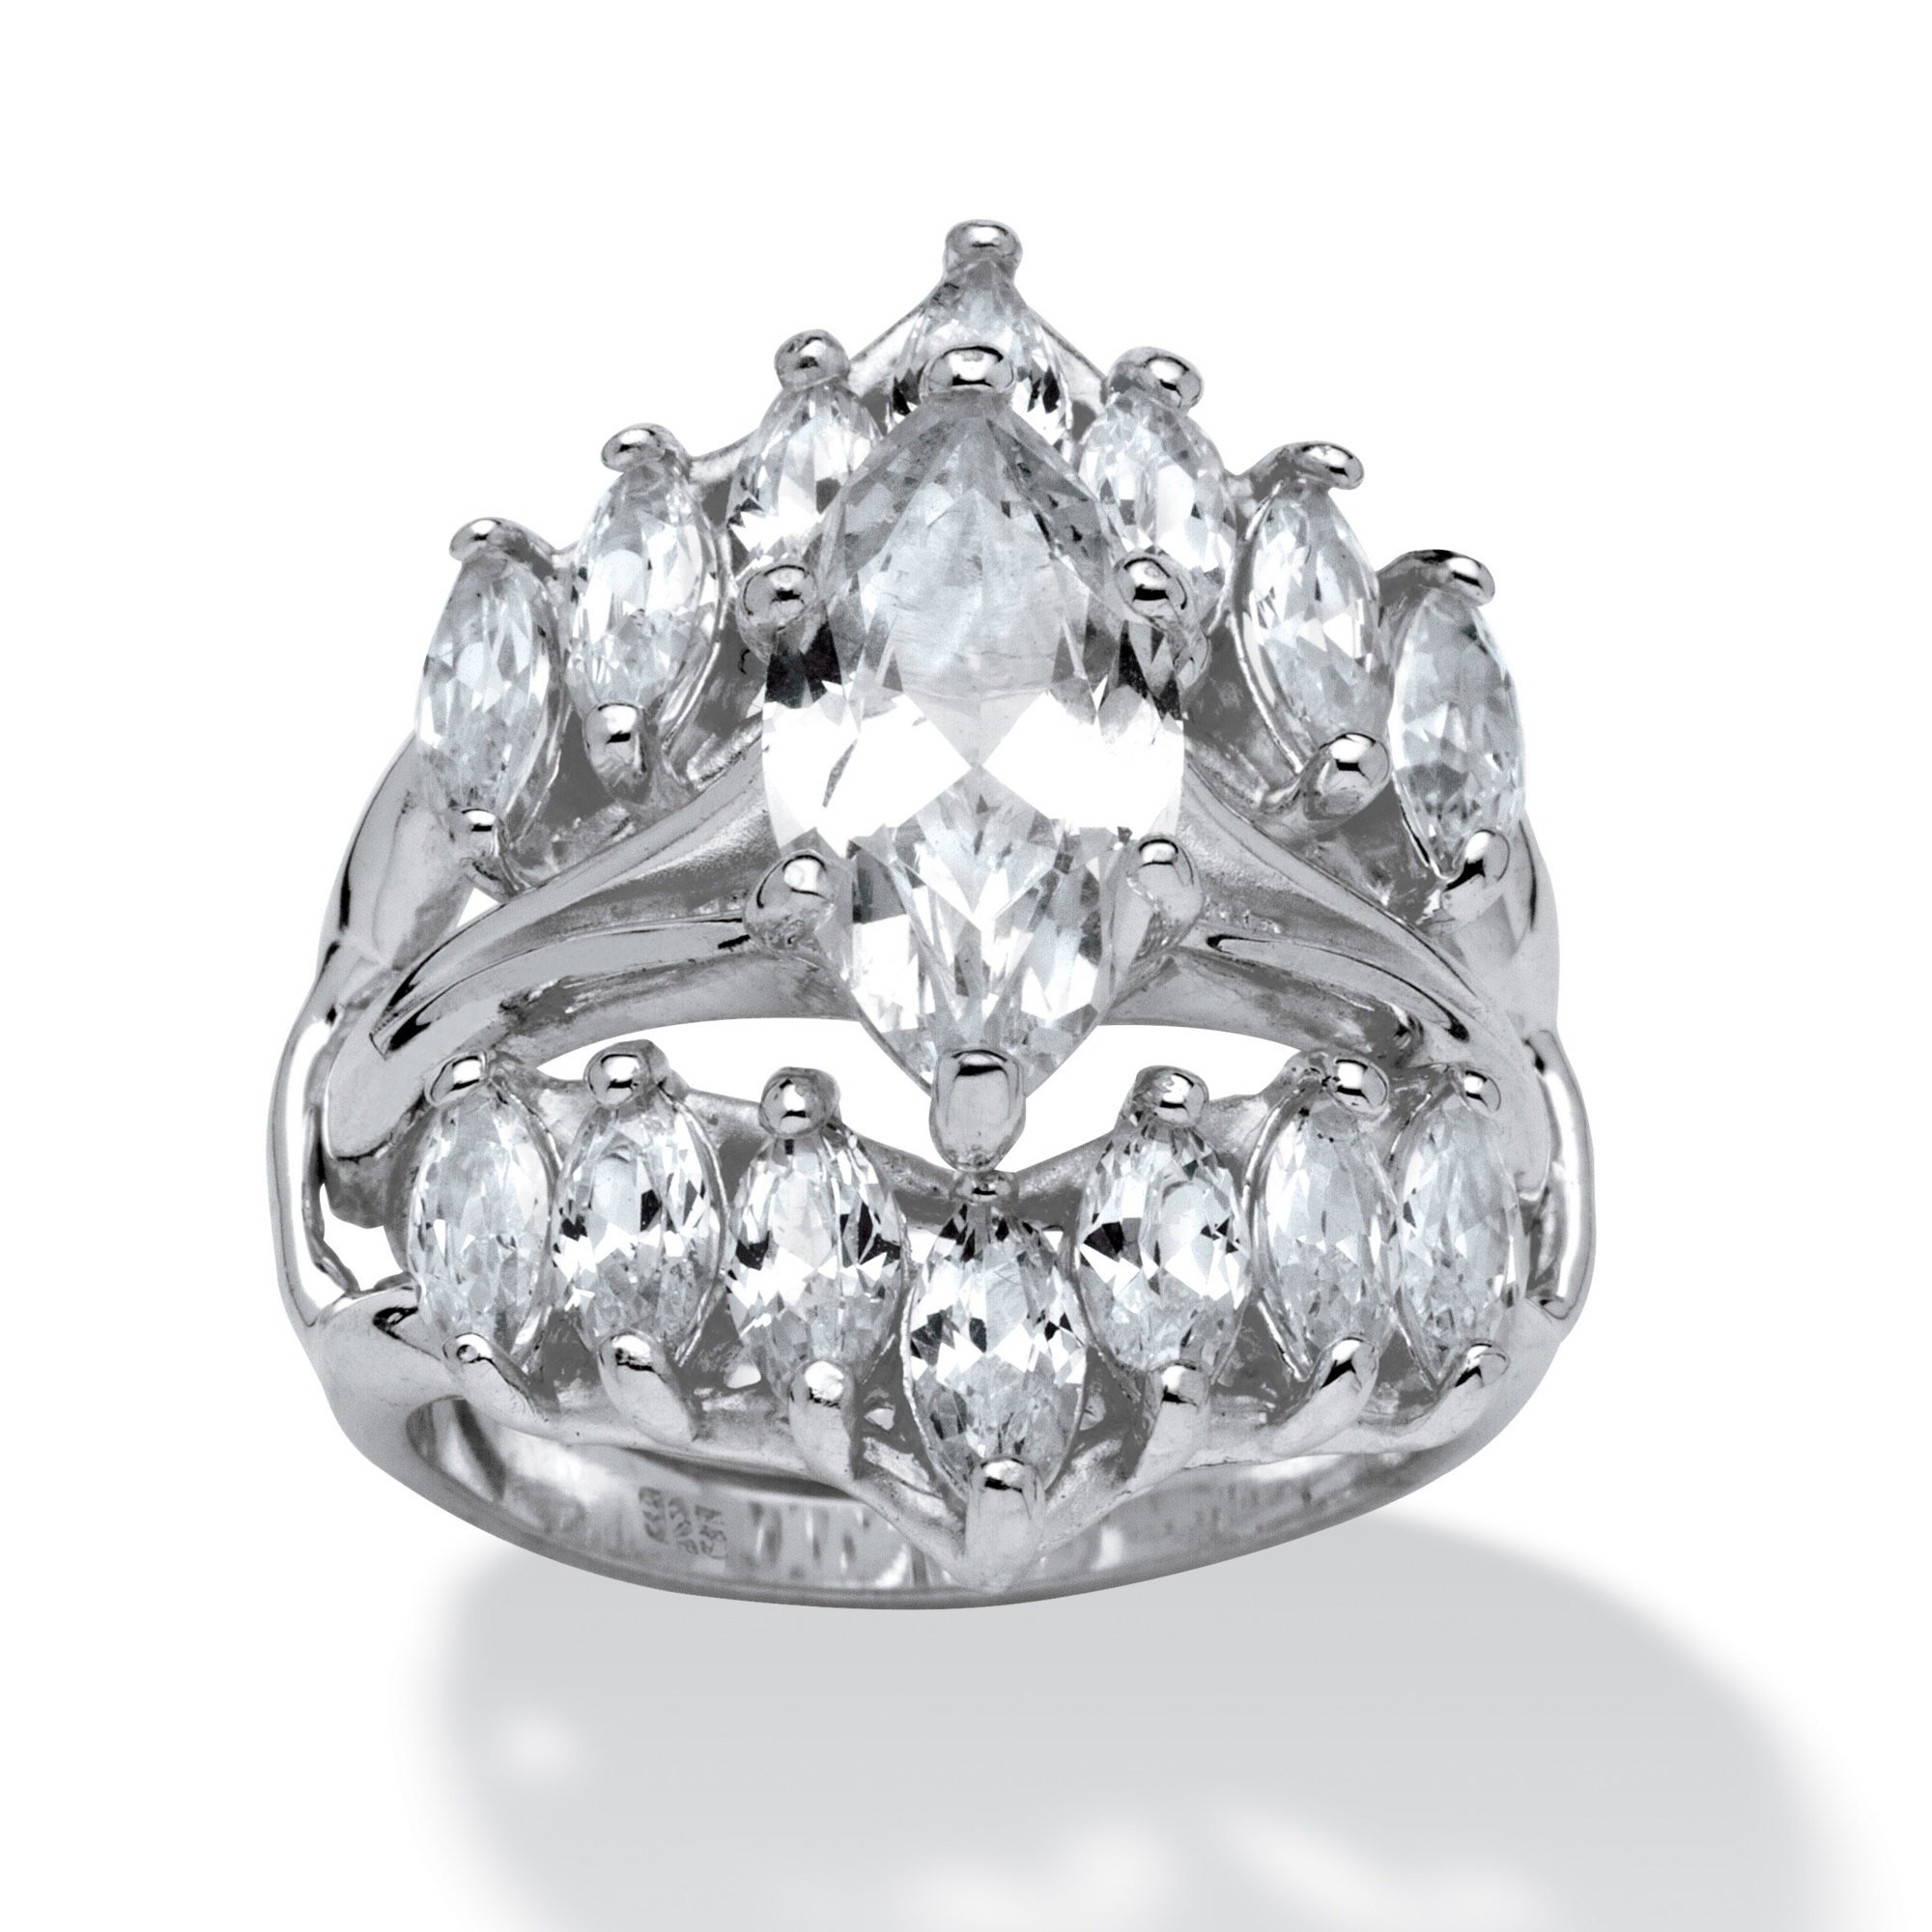 598 TCW Marquise Cut Cubic Zirconia Sterling Silver